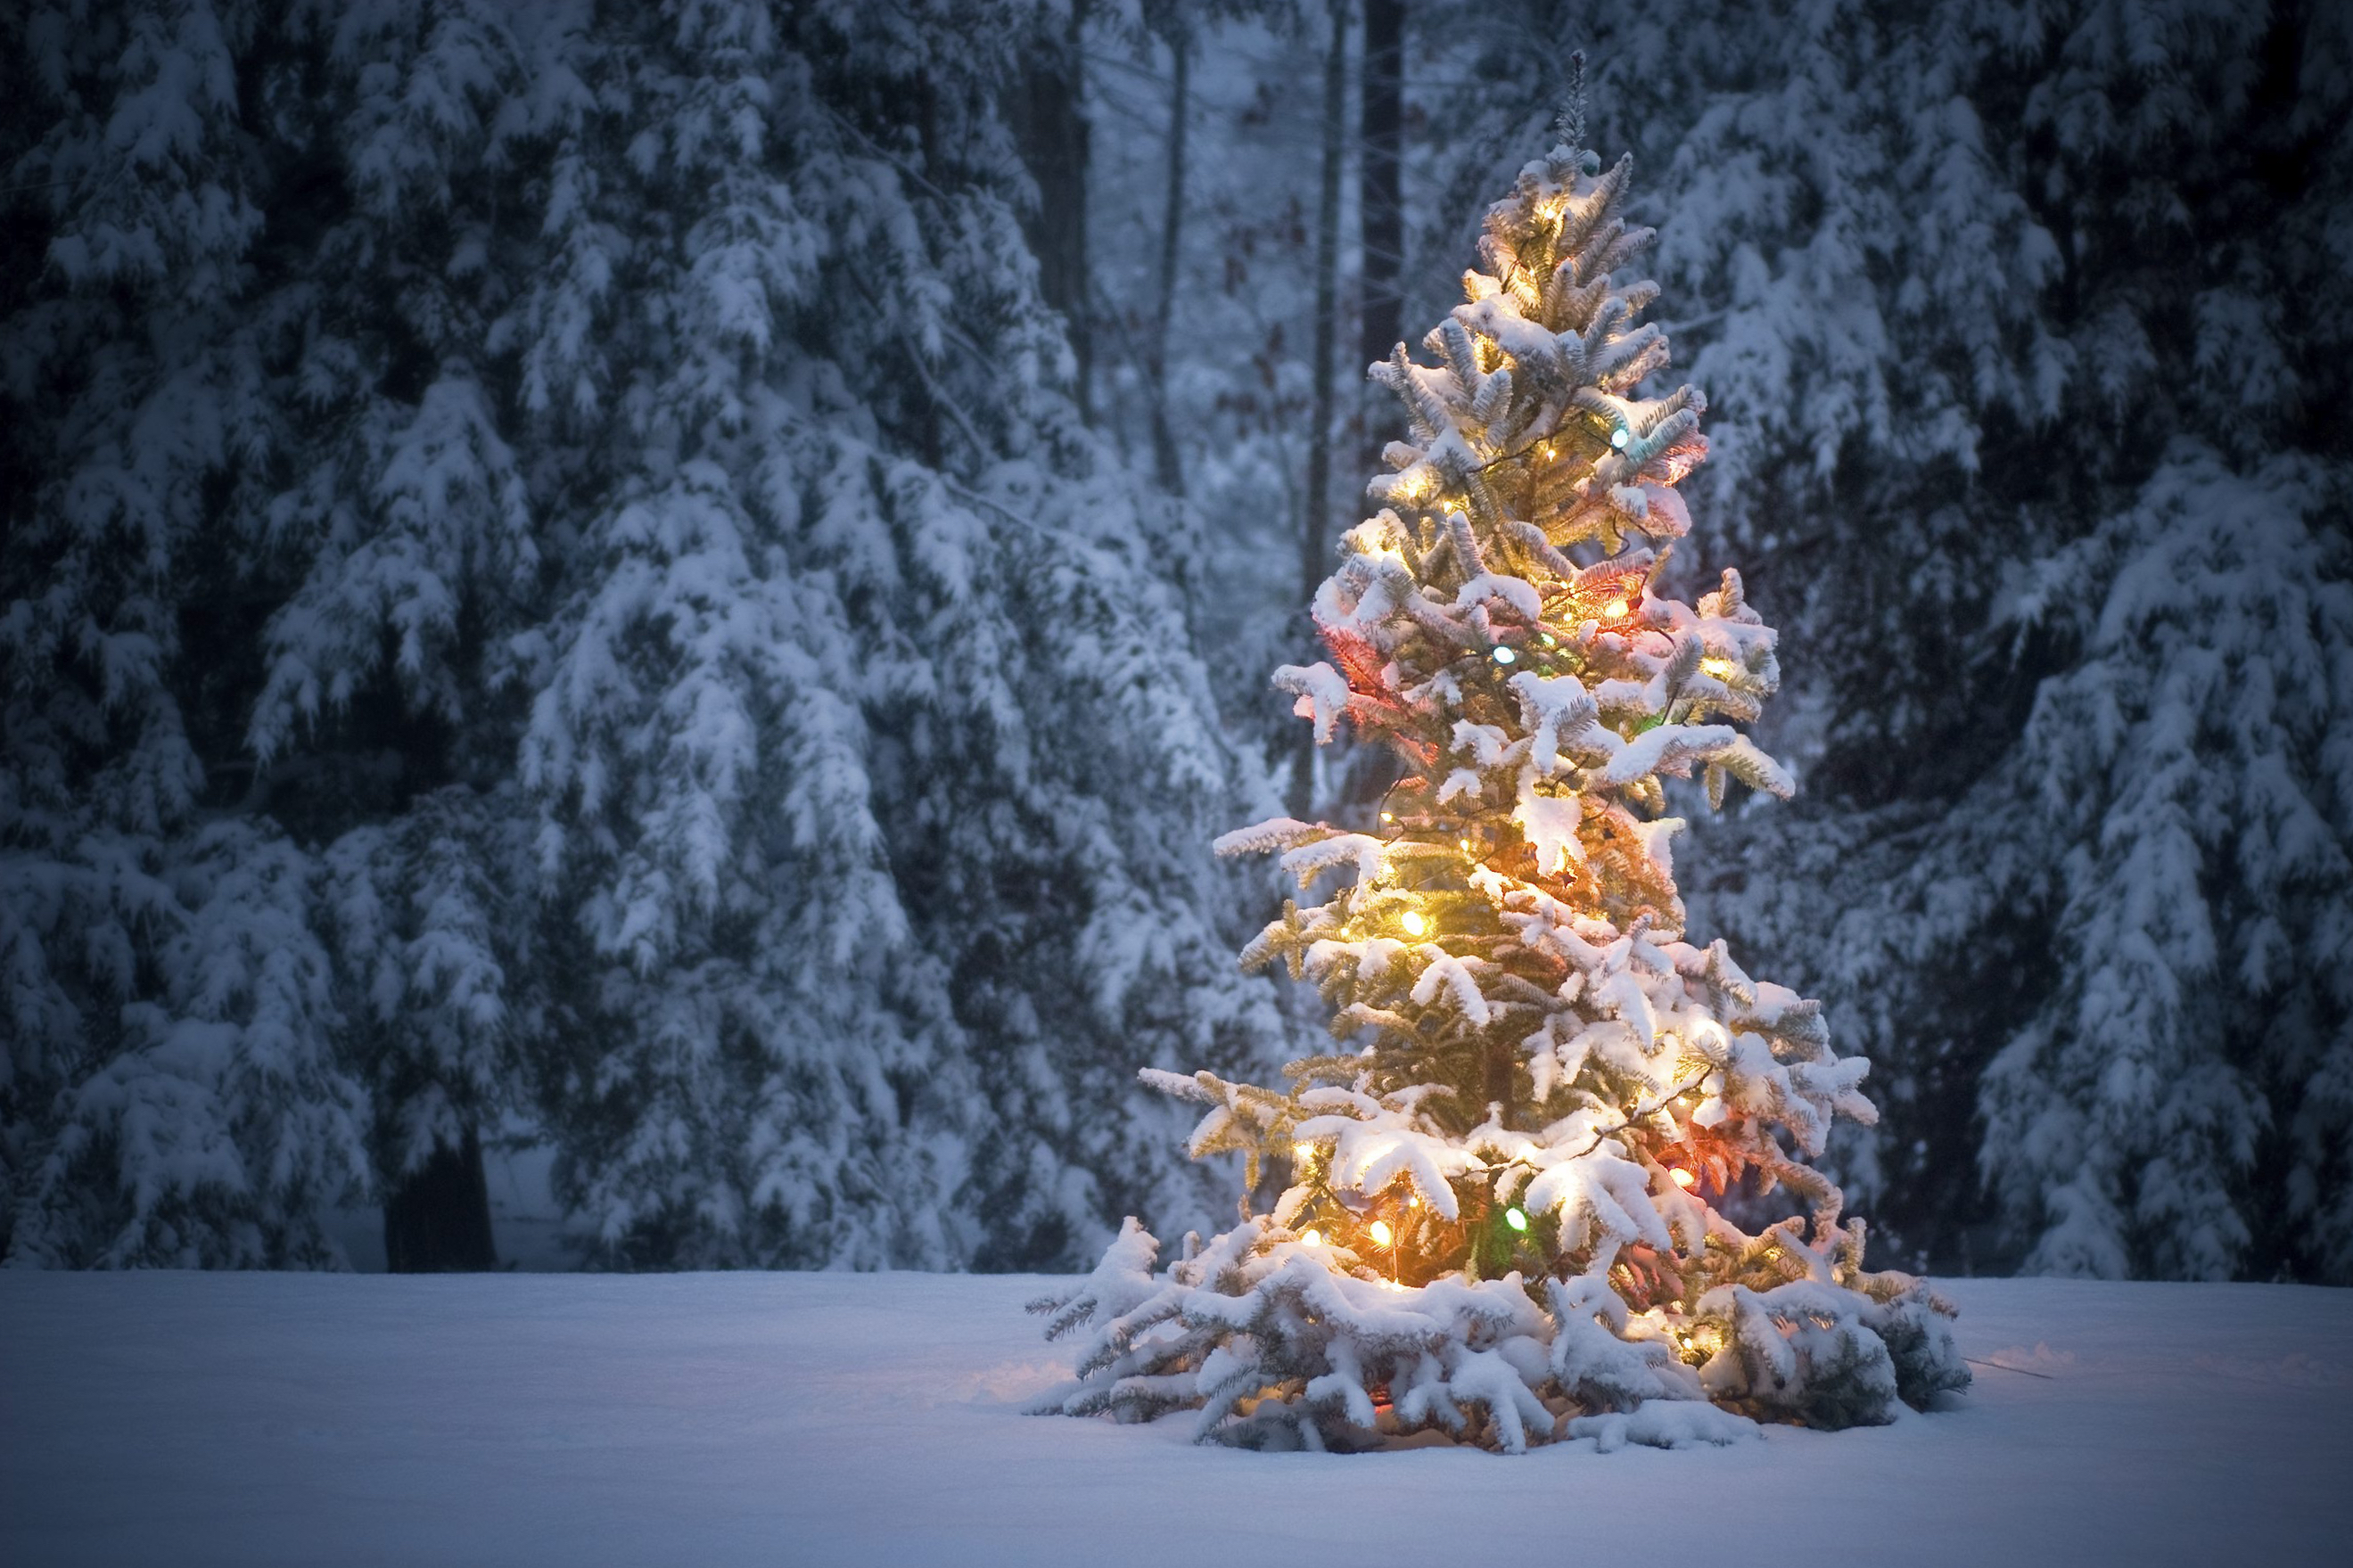 Christmas tree lit under a fresh blanket of snow in the pre-dawn light.